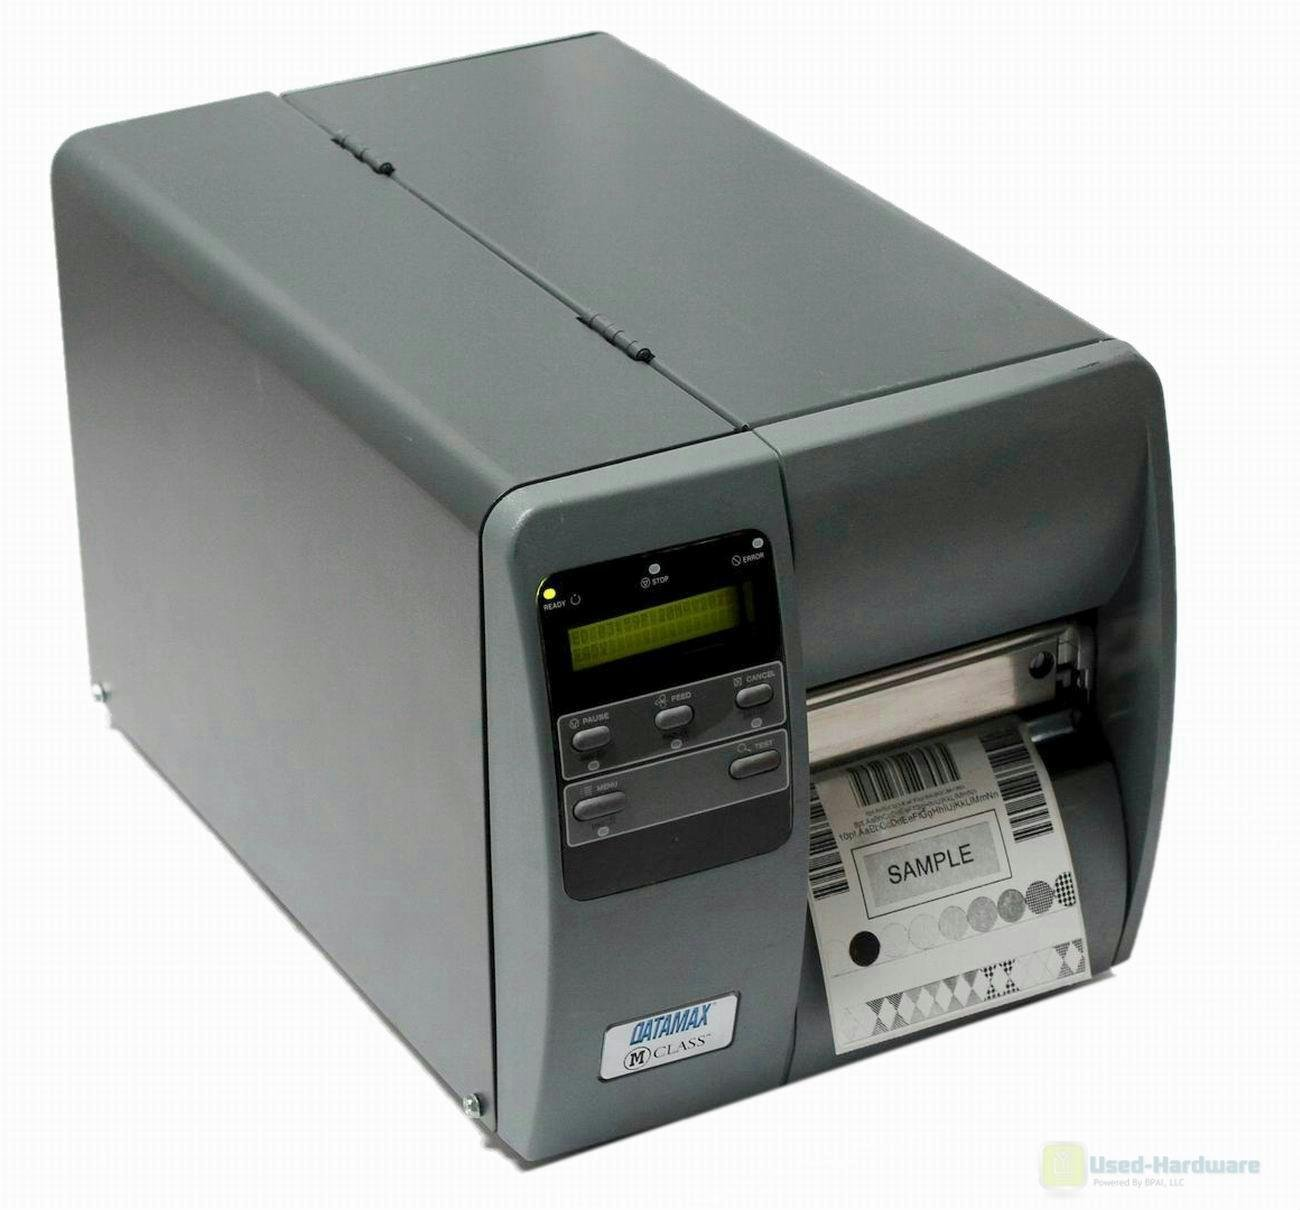 Amazon.com: Datamax DMX-M-4208 K22-00-18000L01 Thermal Barcode Label Printer  USB Network Serial Parallel 203DPI: Office Products